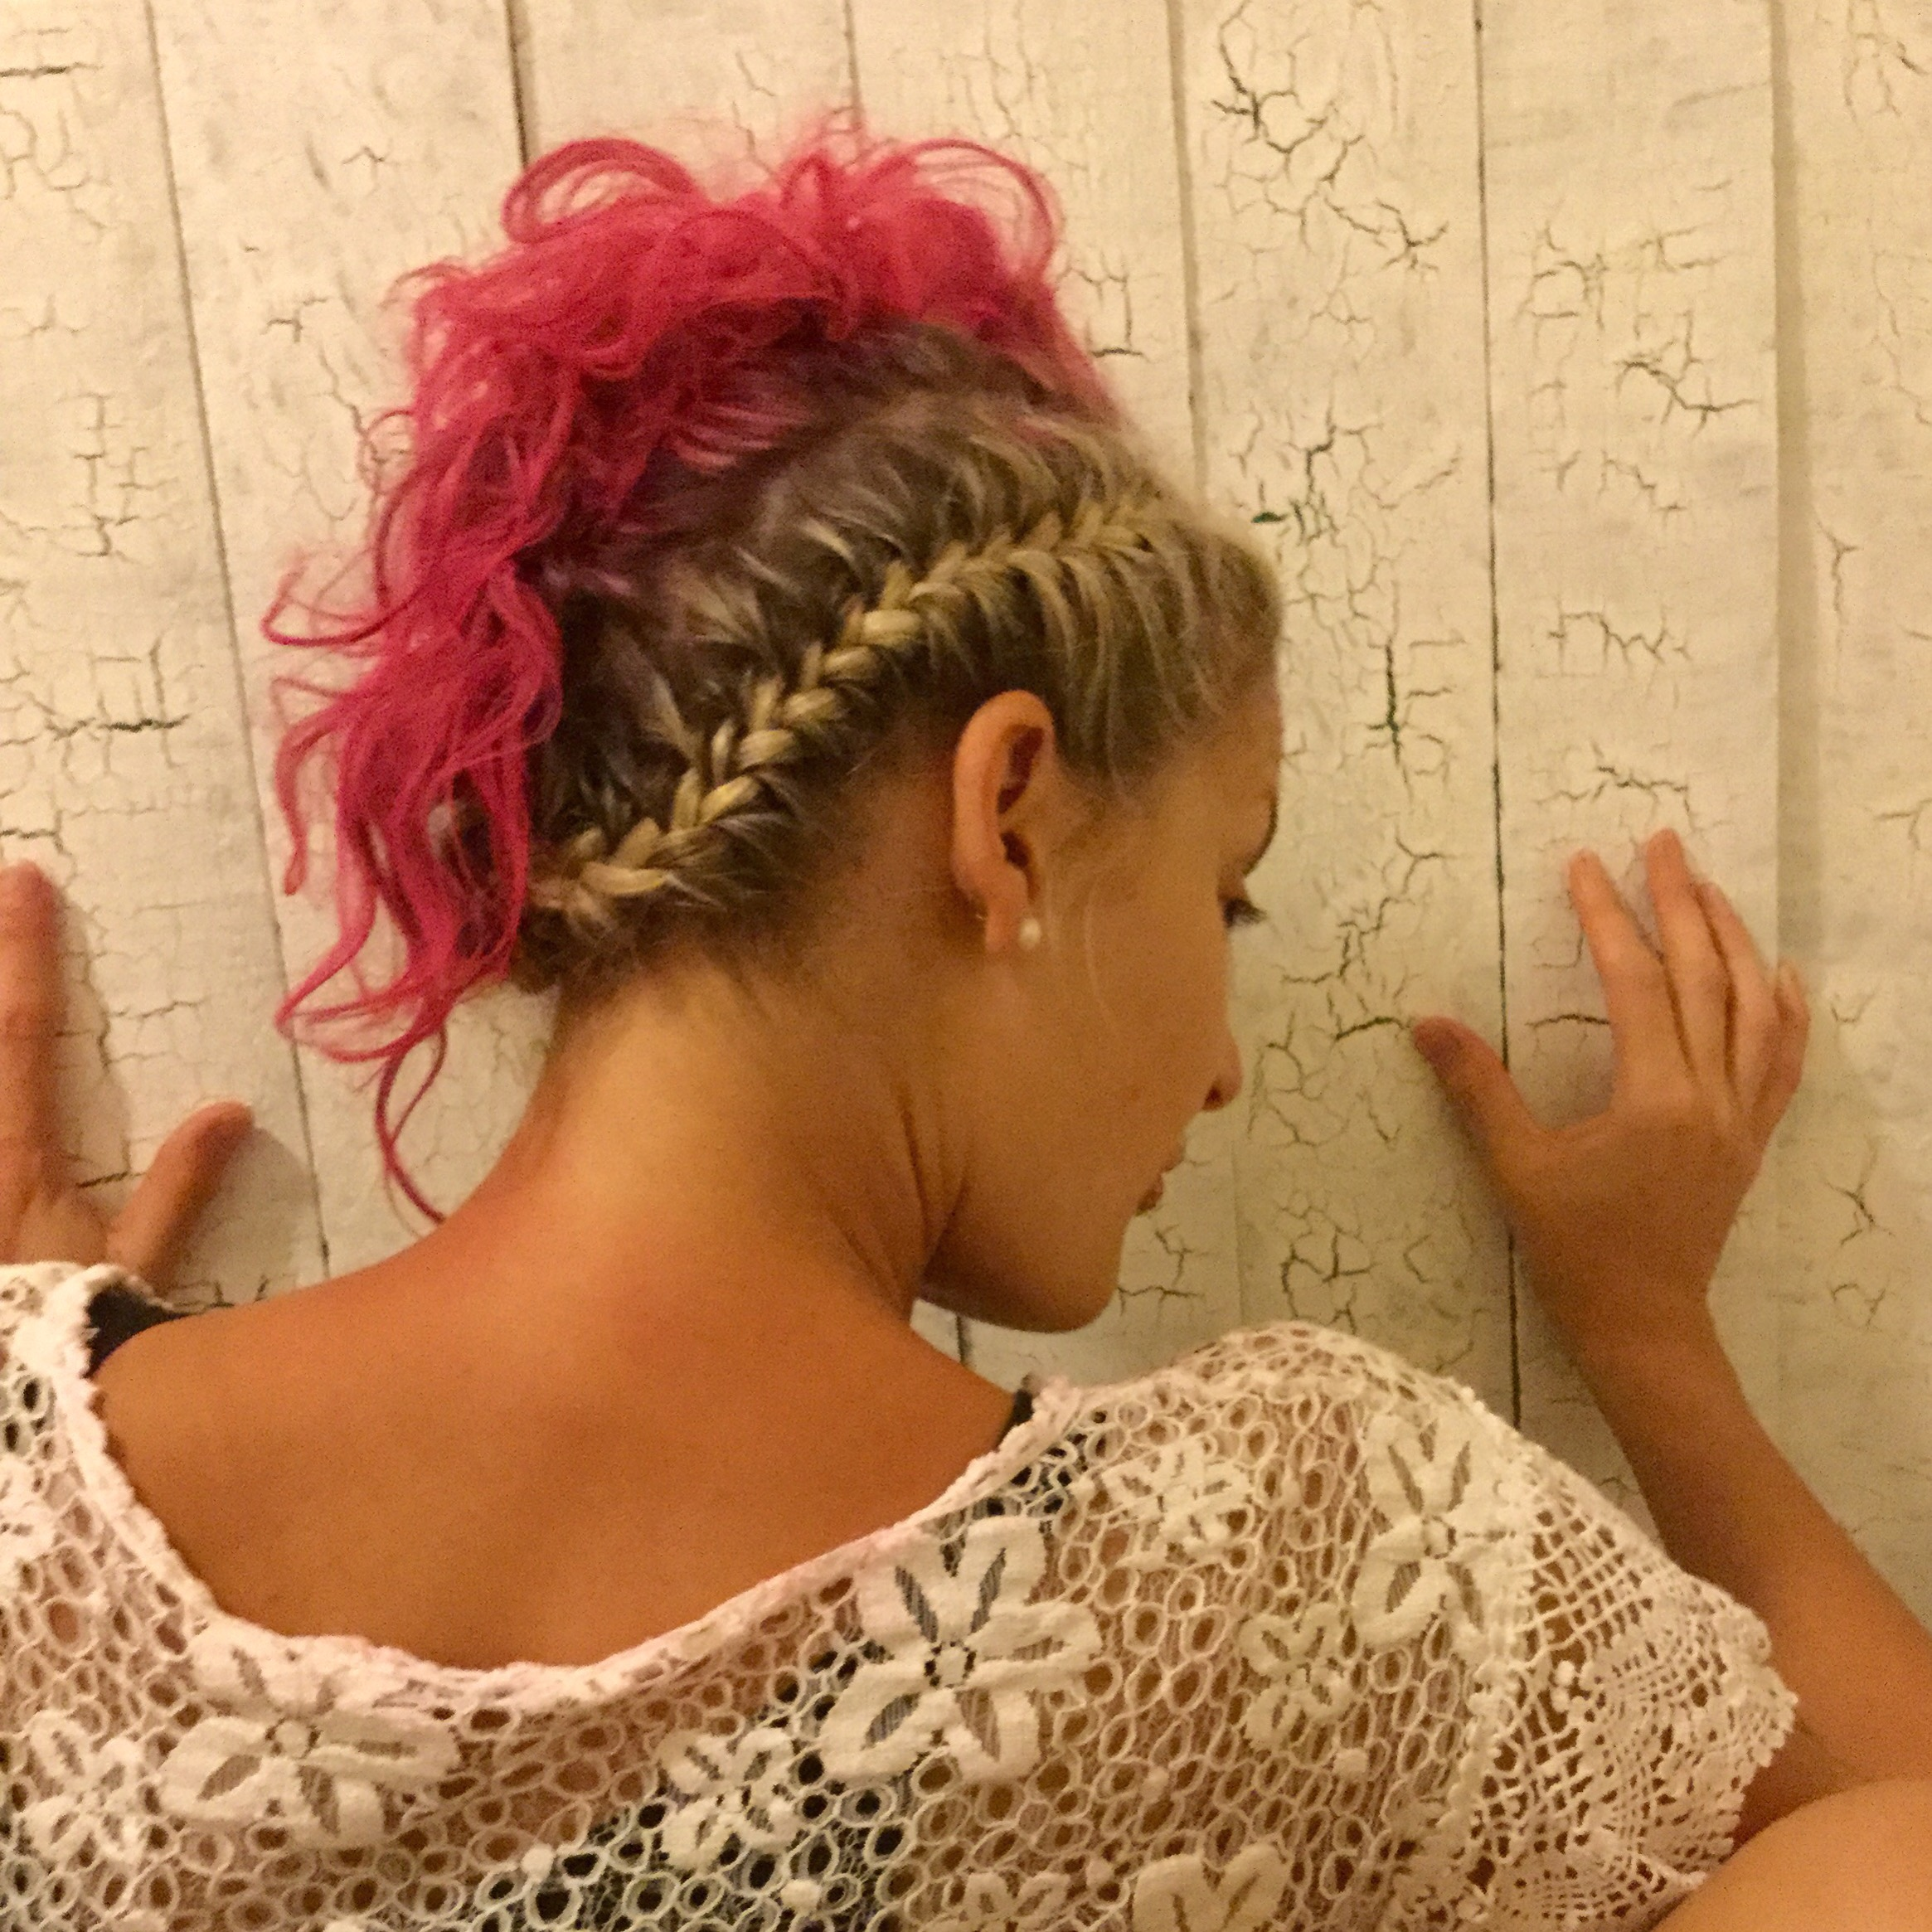 Fun updo - Using washable colors, and different textures to create a unique party look.